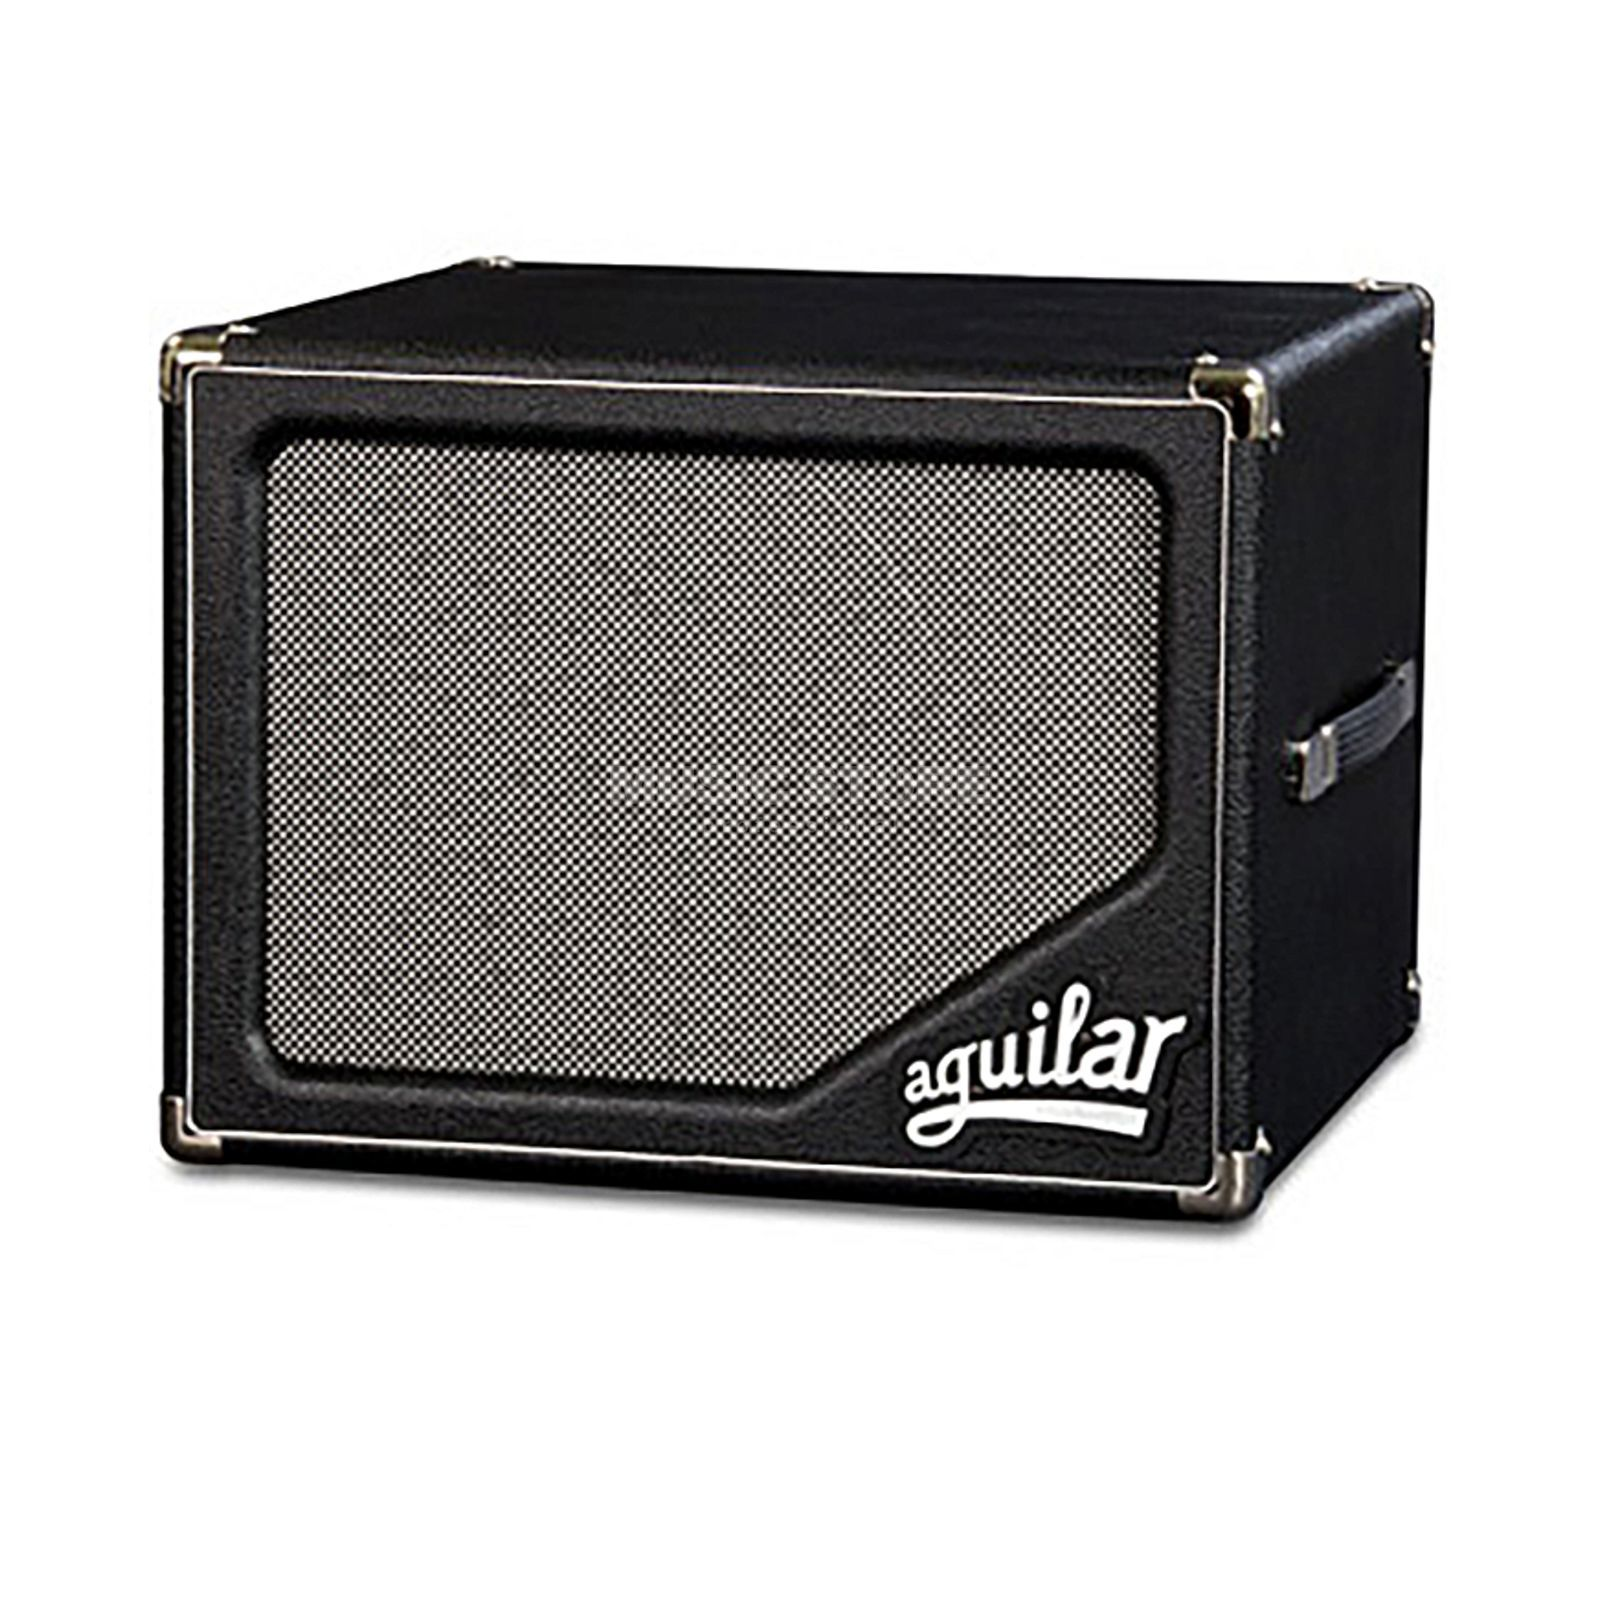 Aguilar SL 112 Cabinet 1x12 Cab 8 Ohm Product Image